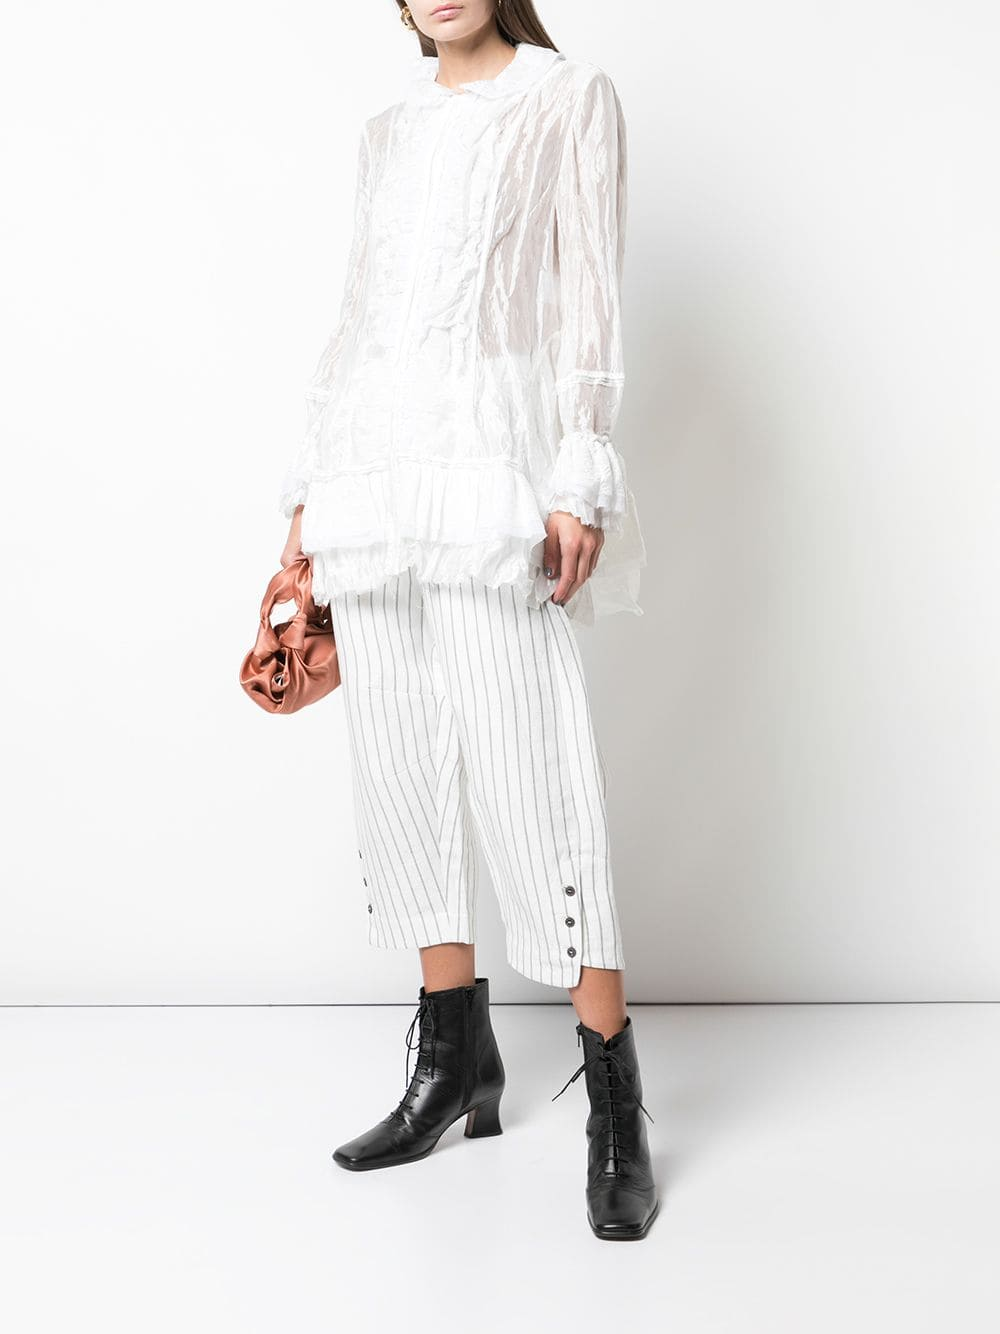 Renli Su Women Long Shirt With Rounded Layered Collar